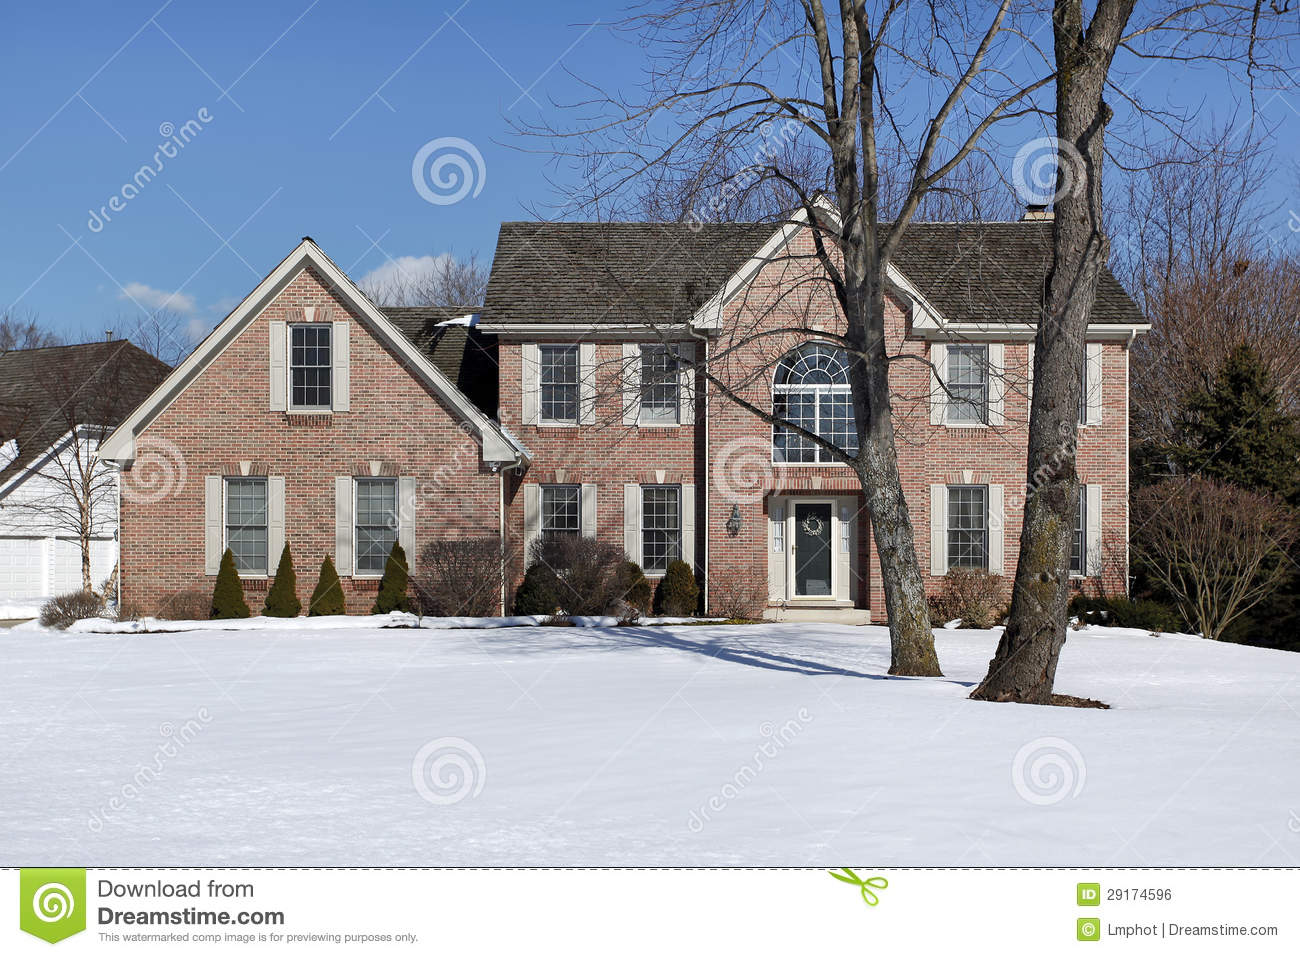 Large brick home in winter